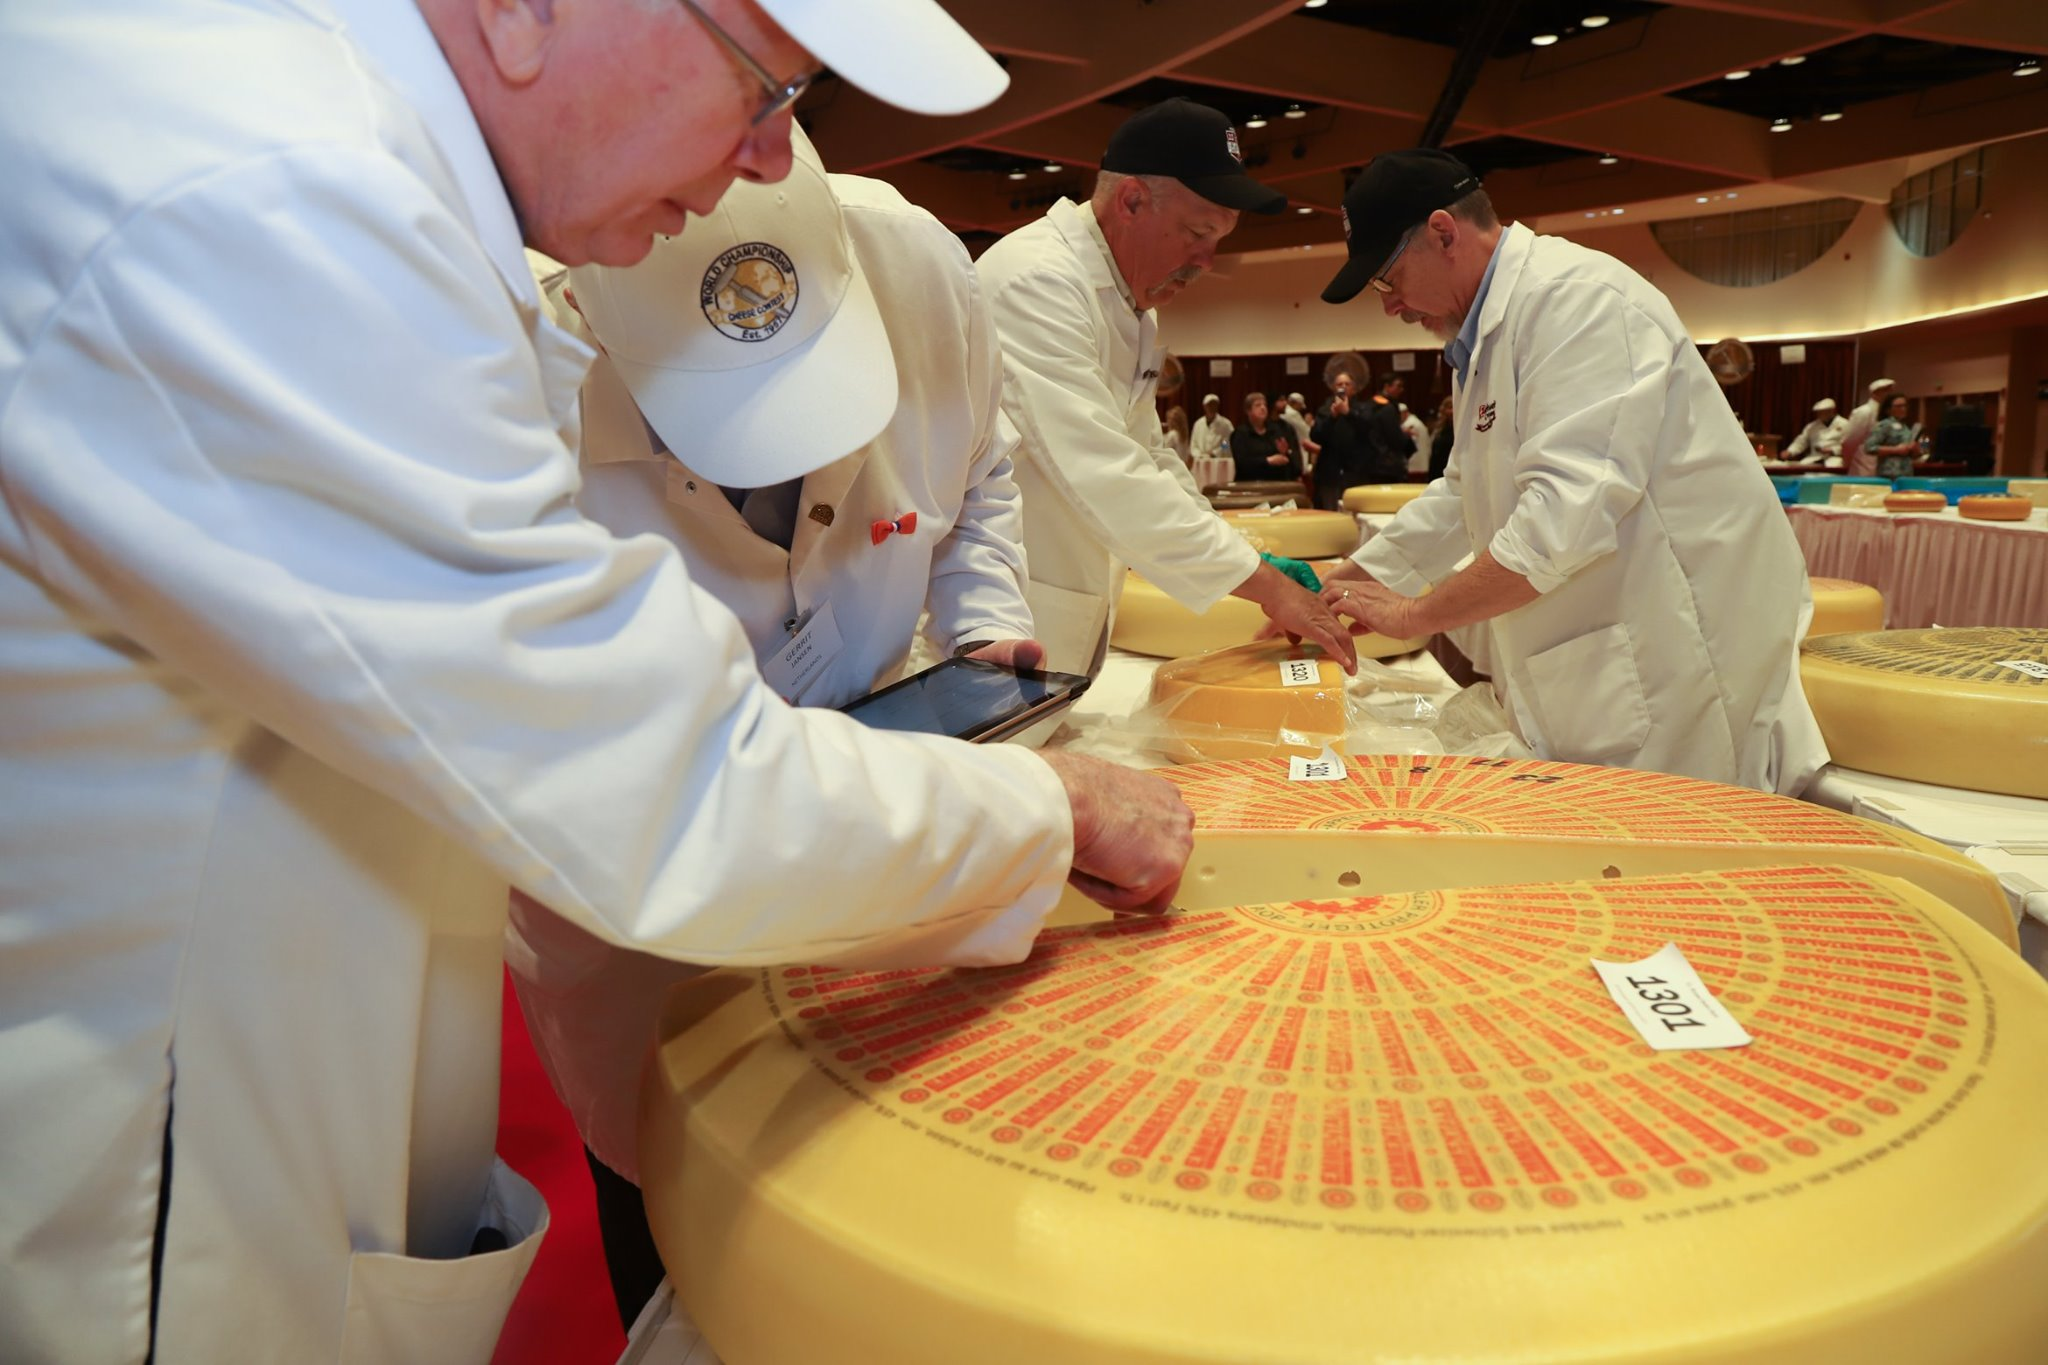 Coatesville-Made Cheese Among 20 Finalists from 3,667 Entries at World Championship of Cheese